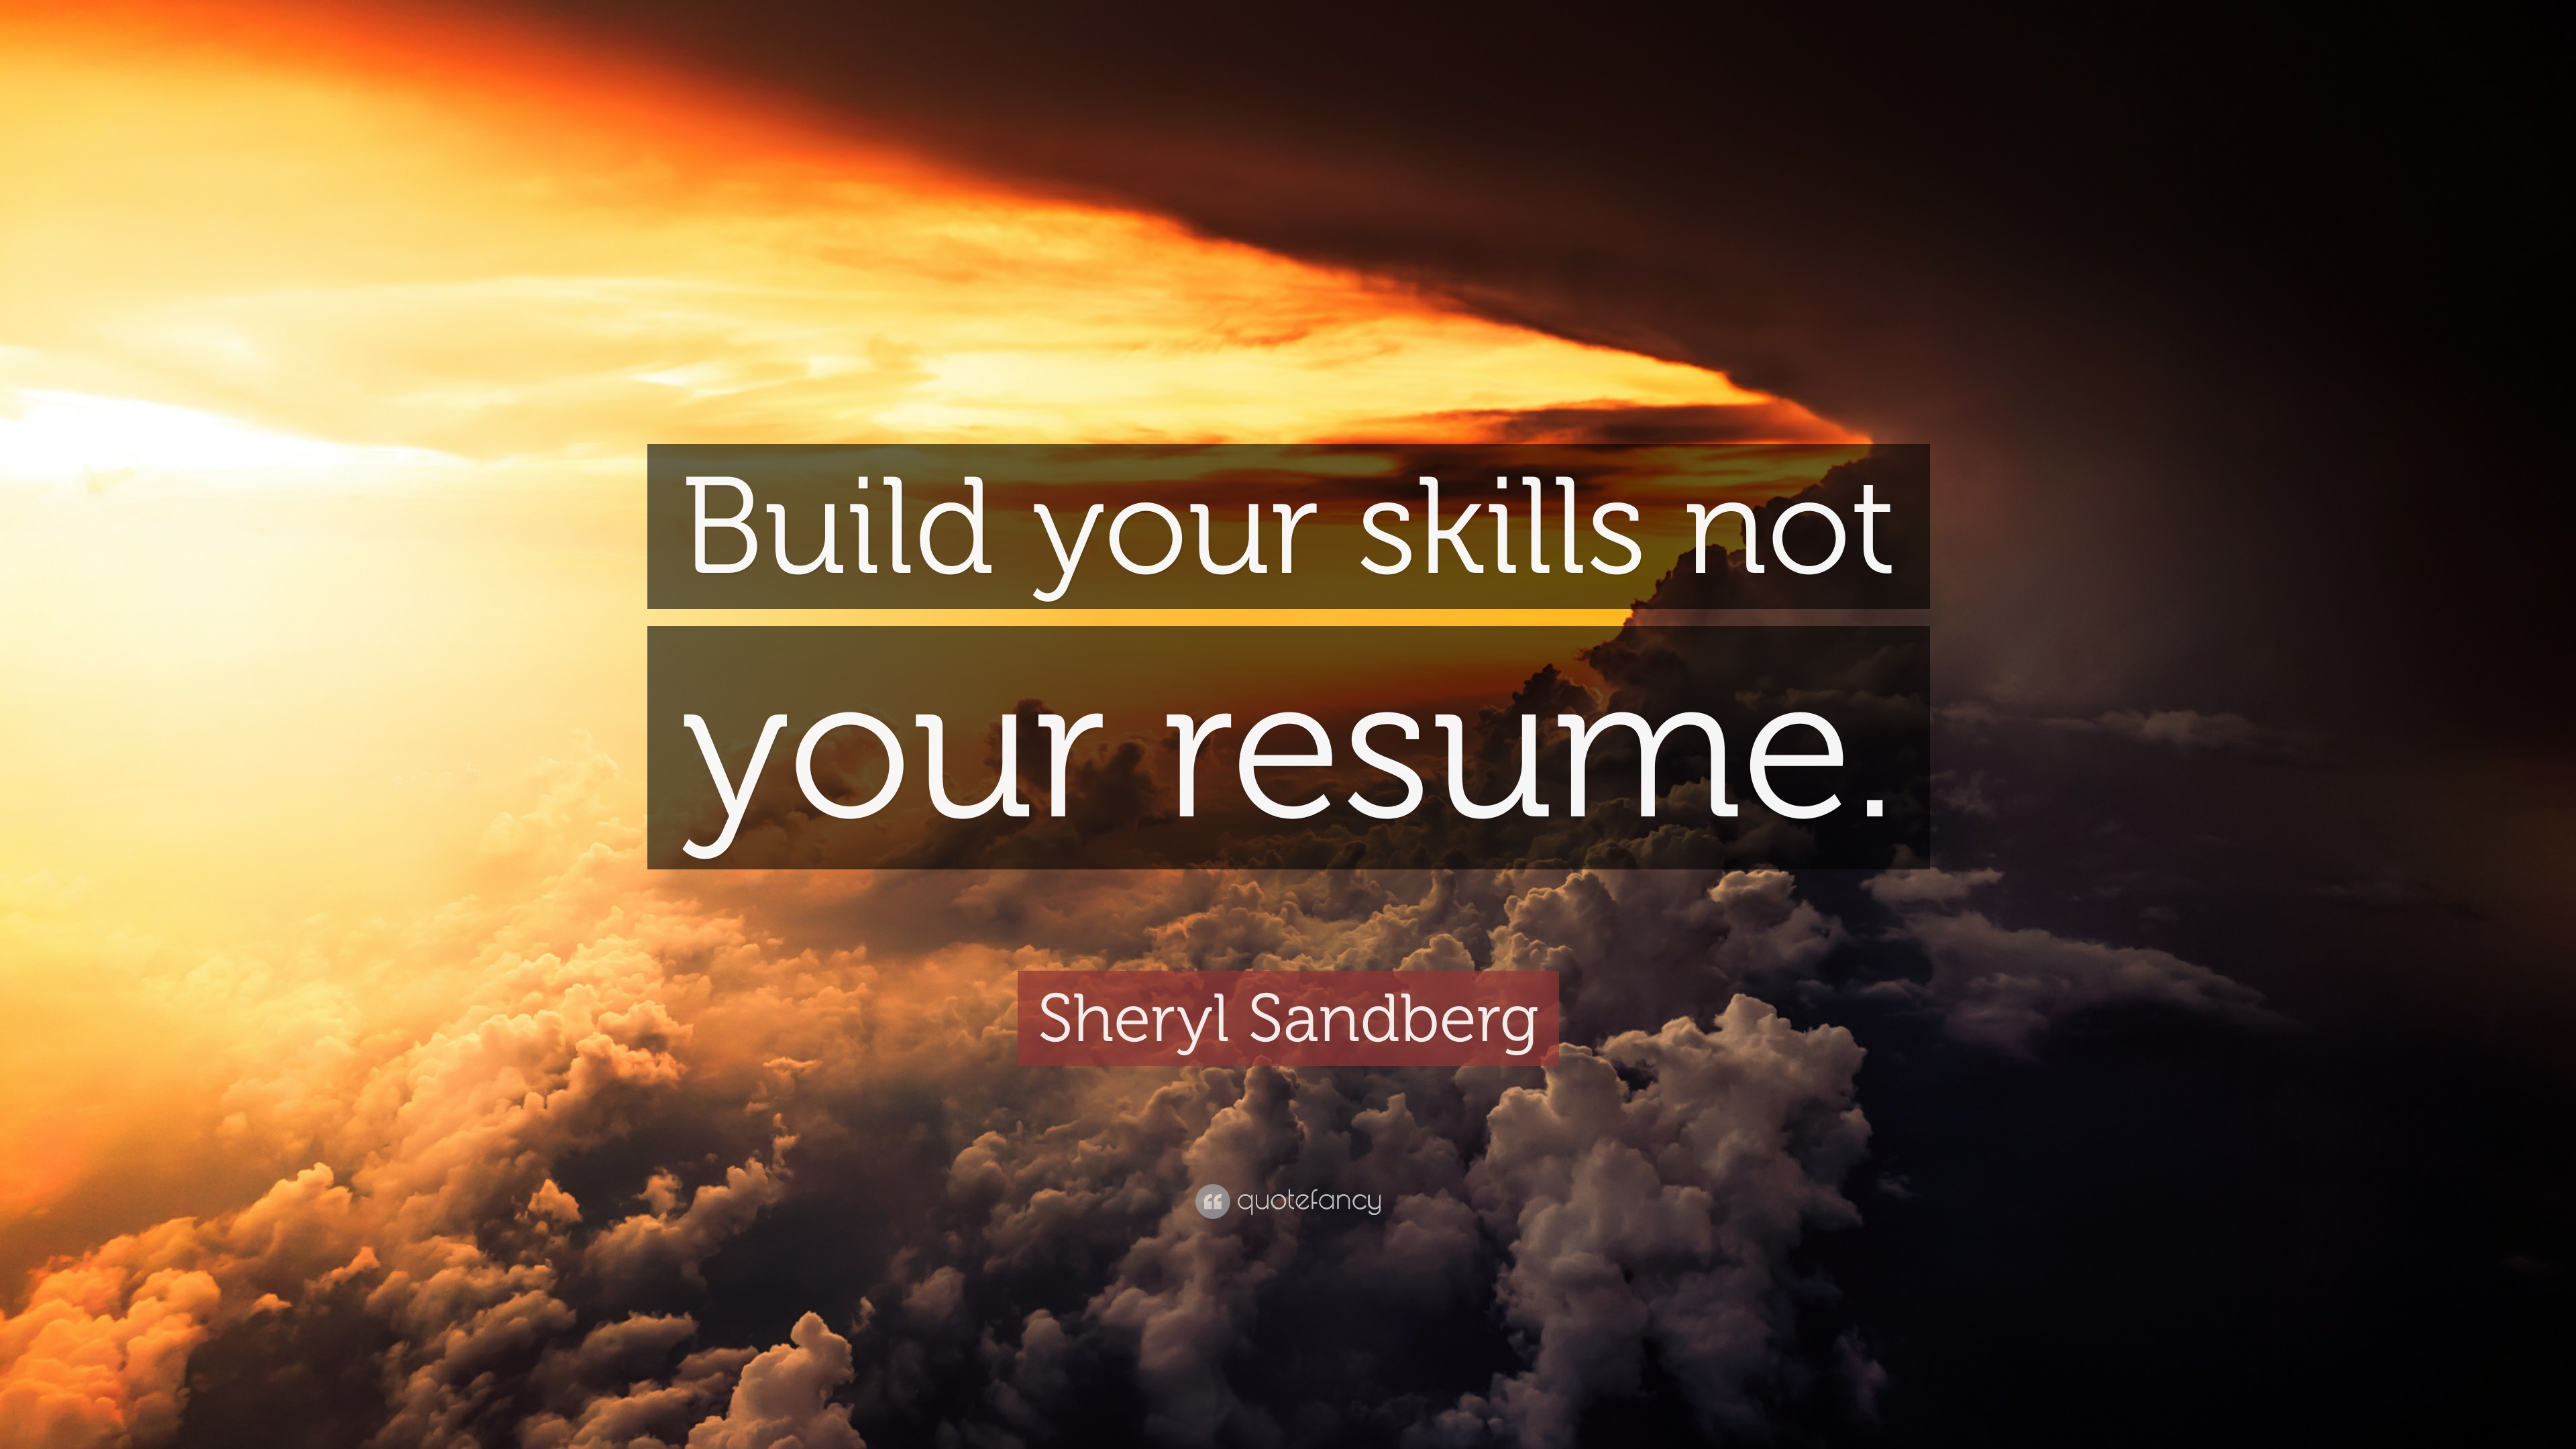 sheryl sandberg quote build your skills not your resume 12